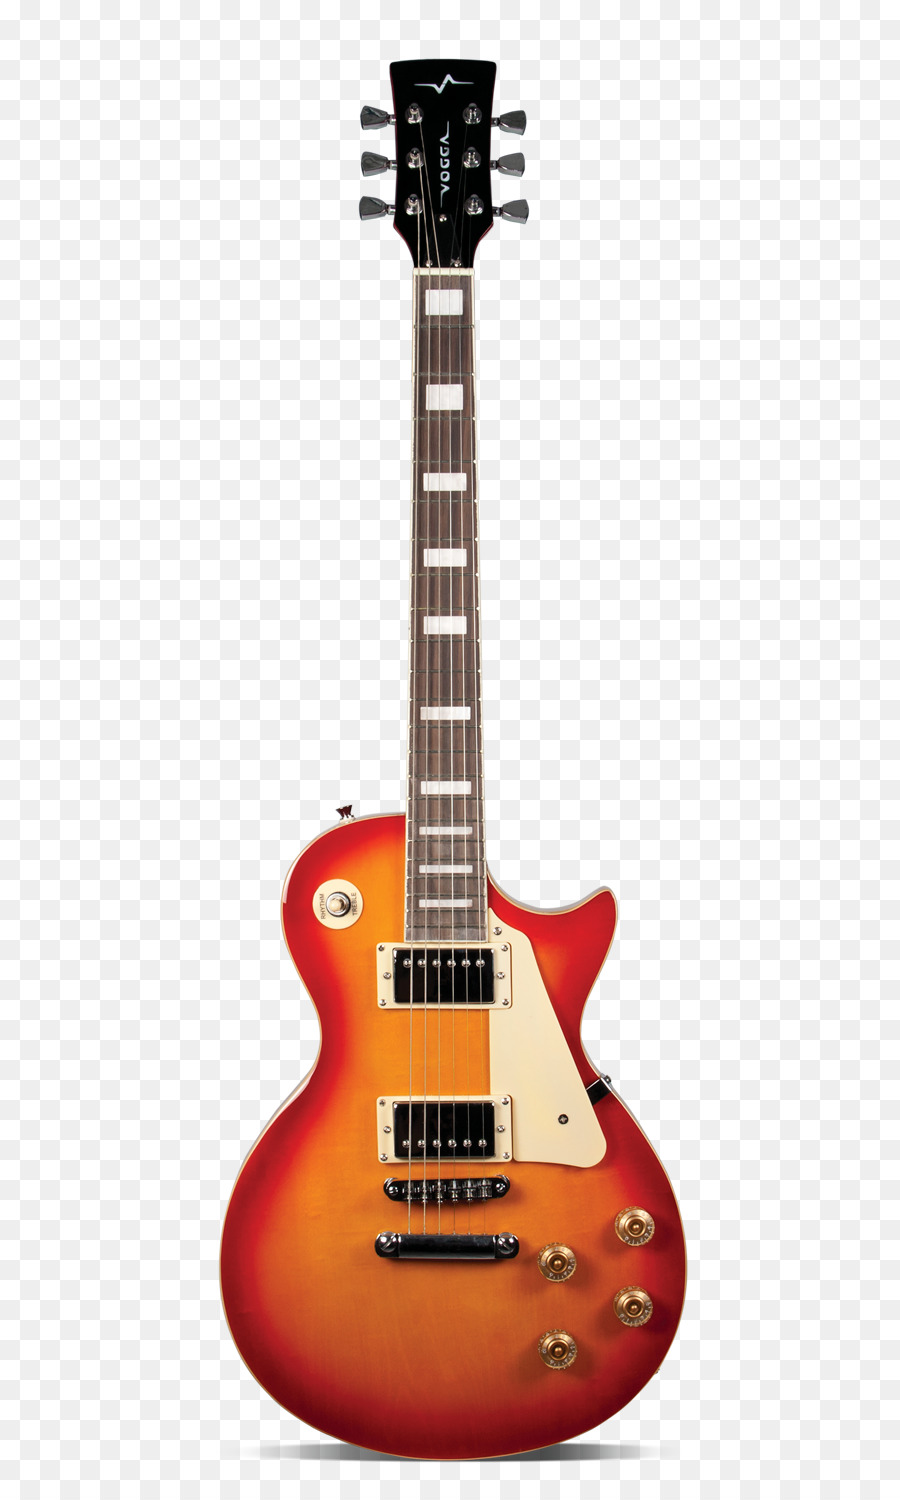 harley benton sc 450 plus cb clipart Gibson Les Paul Electric